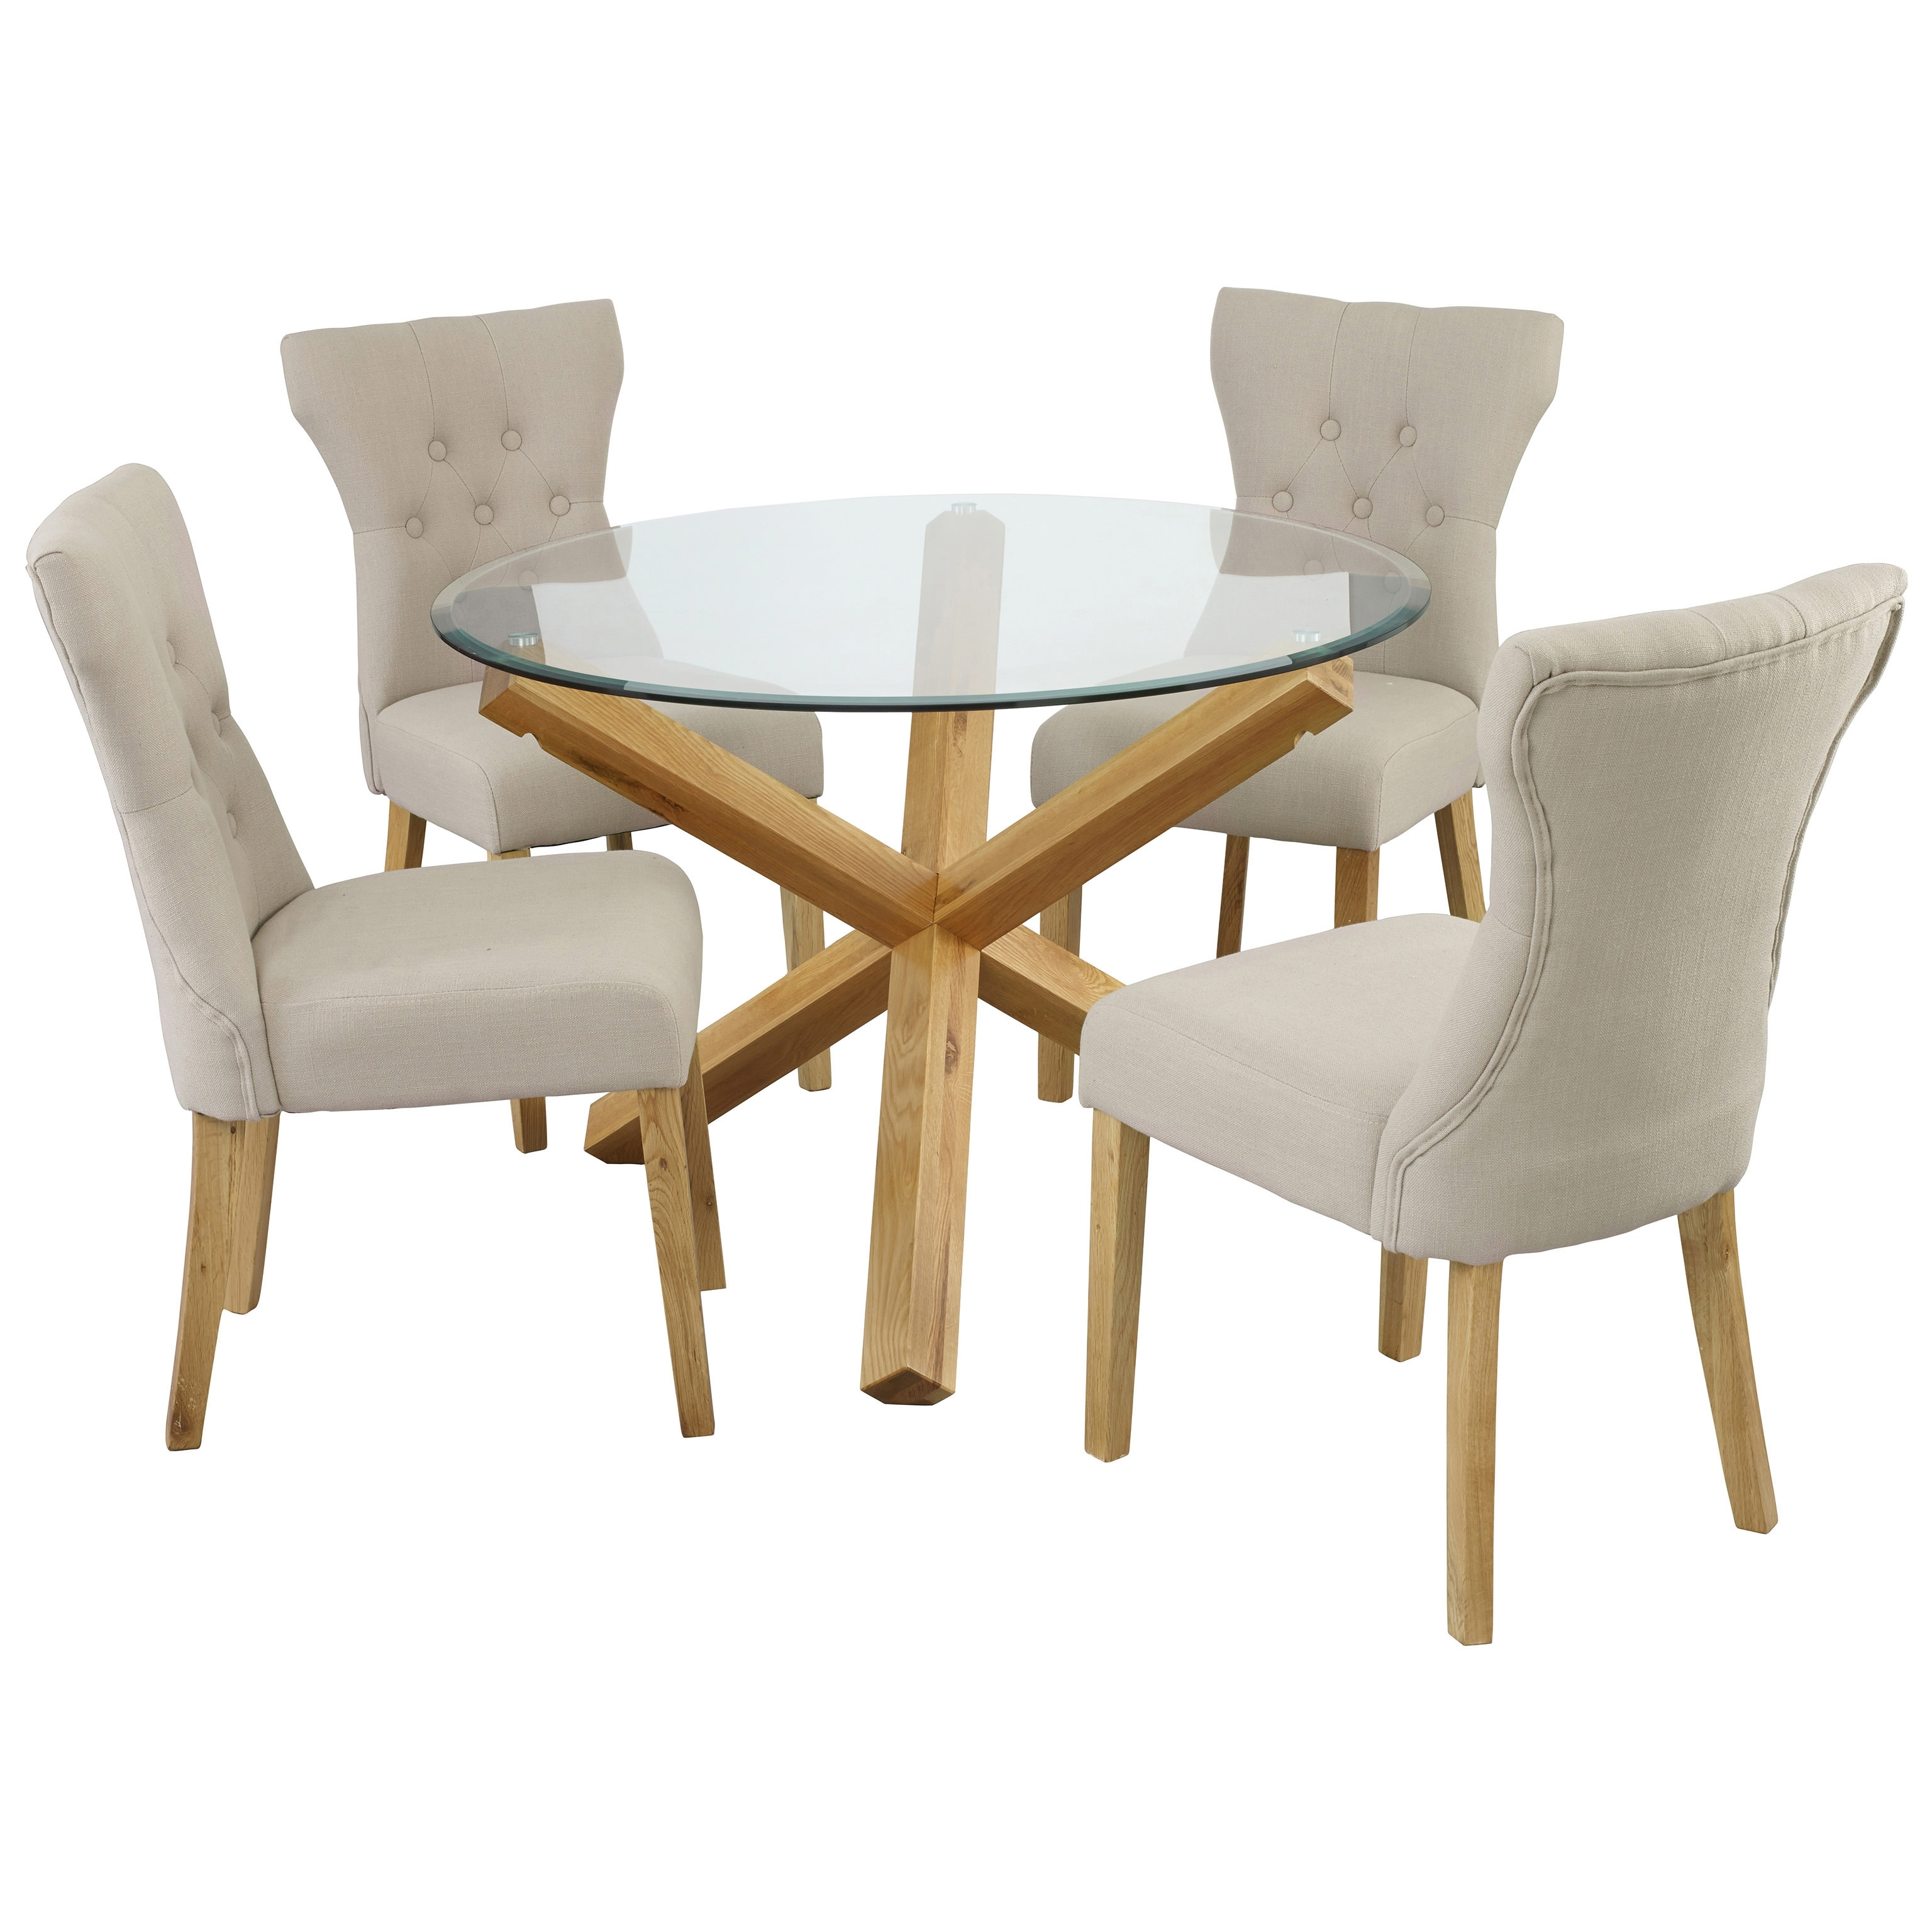 Oak & Glass Round Dining Table And Chair Set With 4 Fabric Seats Intended For Well Known Oak Dining Set 6 Chairs (View 11 of 25)